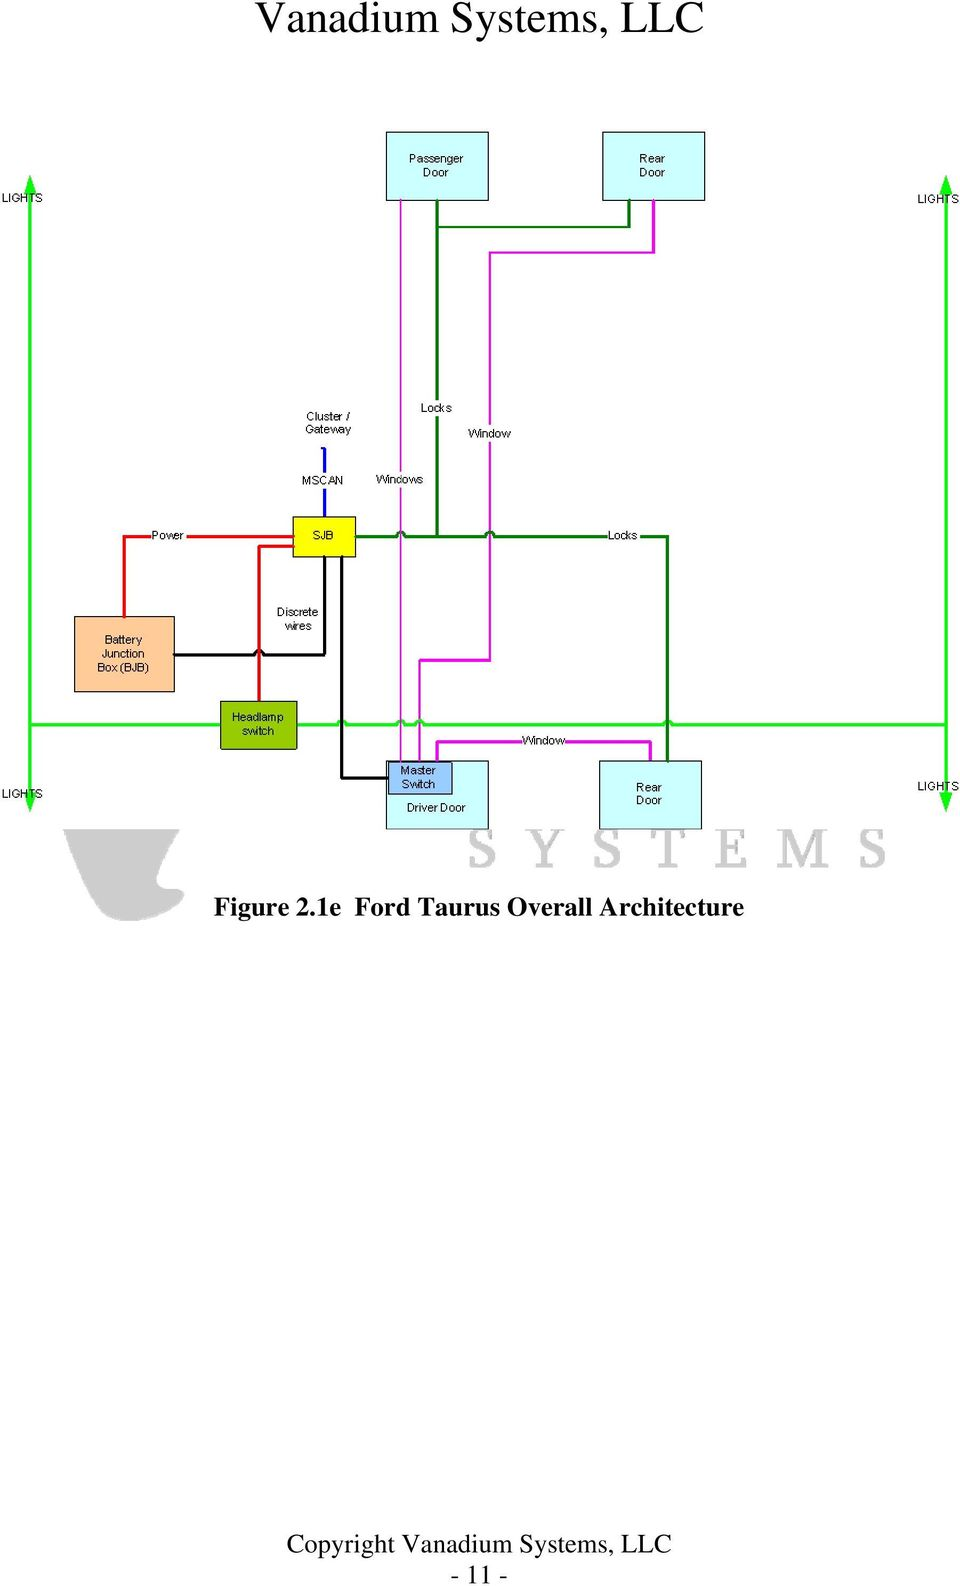 Automotive Architectures For Interior Electronics Pdf Electrical Wiring Diagrams 2003 Subara Outback Ll Bean 12 30 Gm Us 31 Chevrolet Malibu 2005 Overview Analysis Of The And Electronic Architecture Reveals A Very Basic